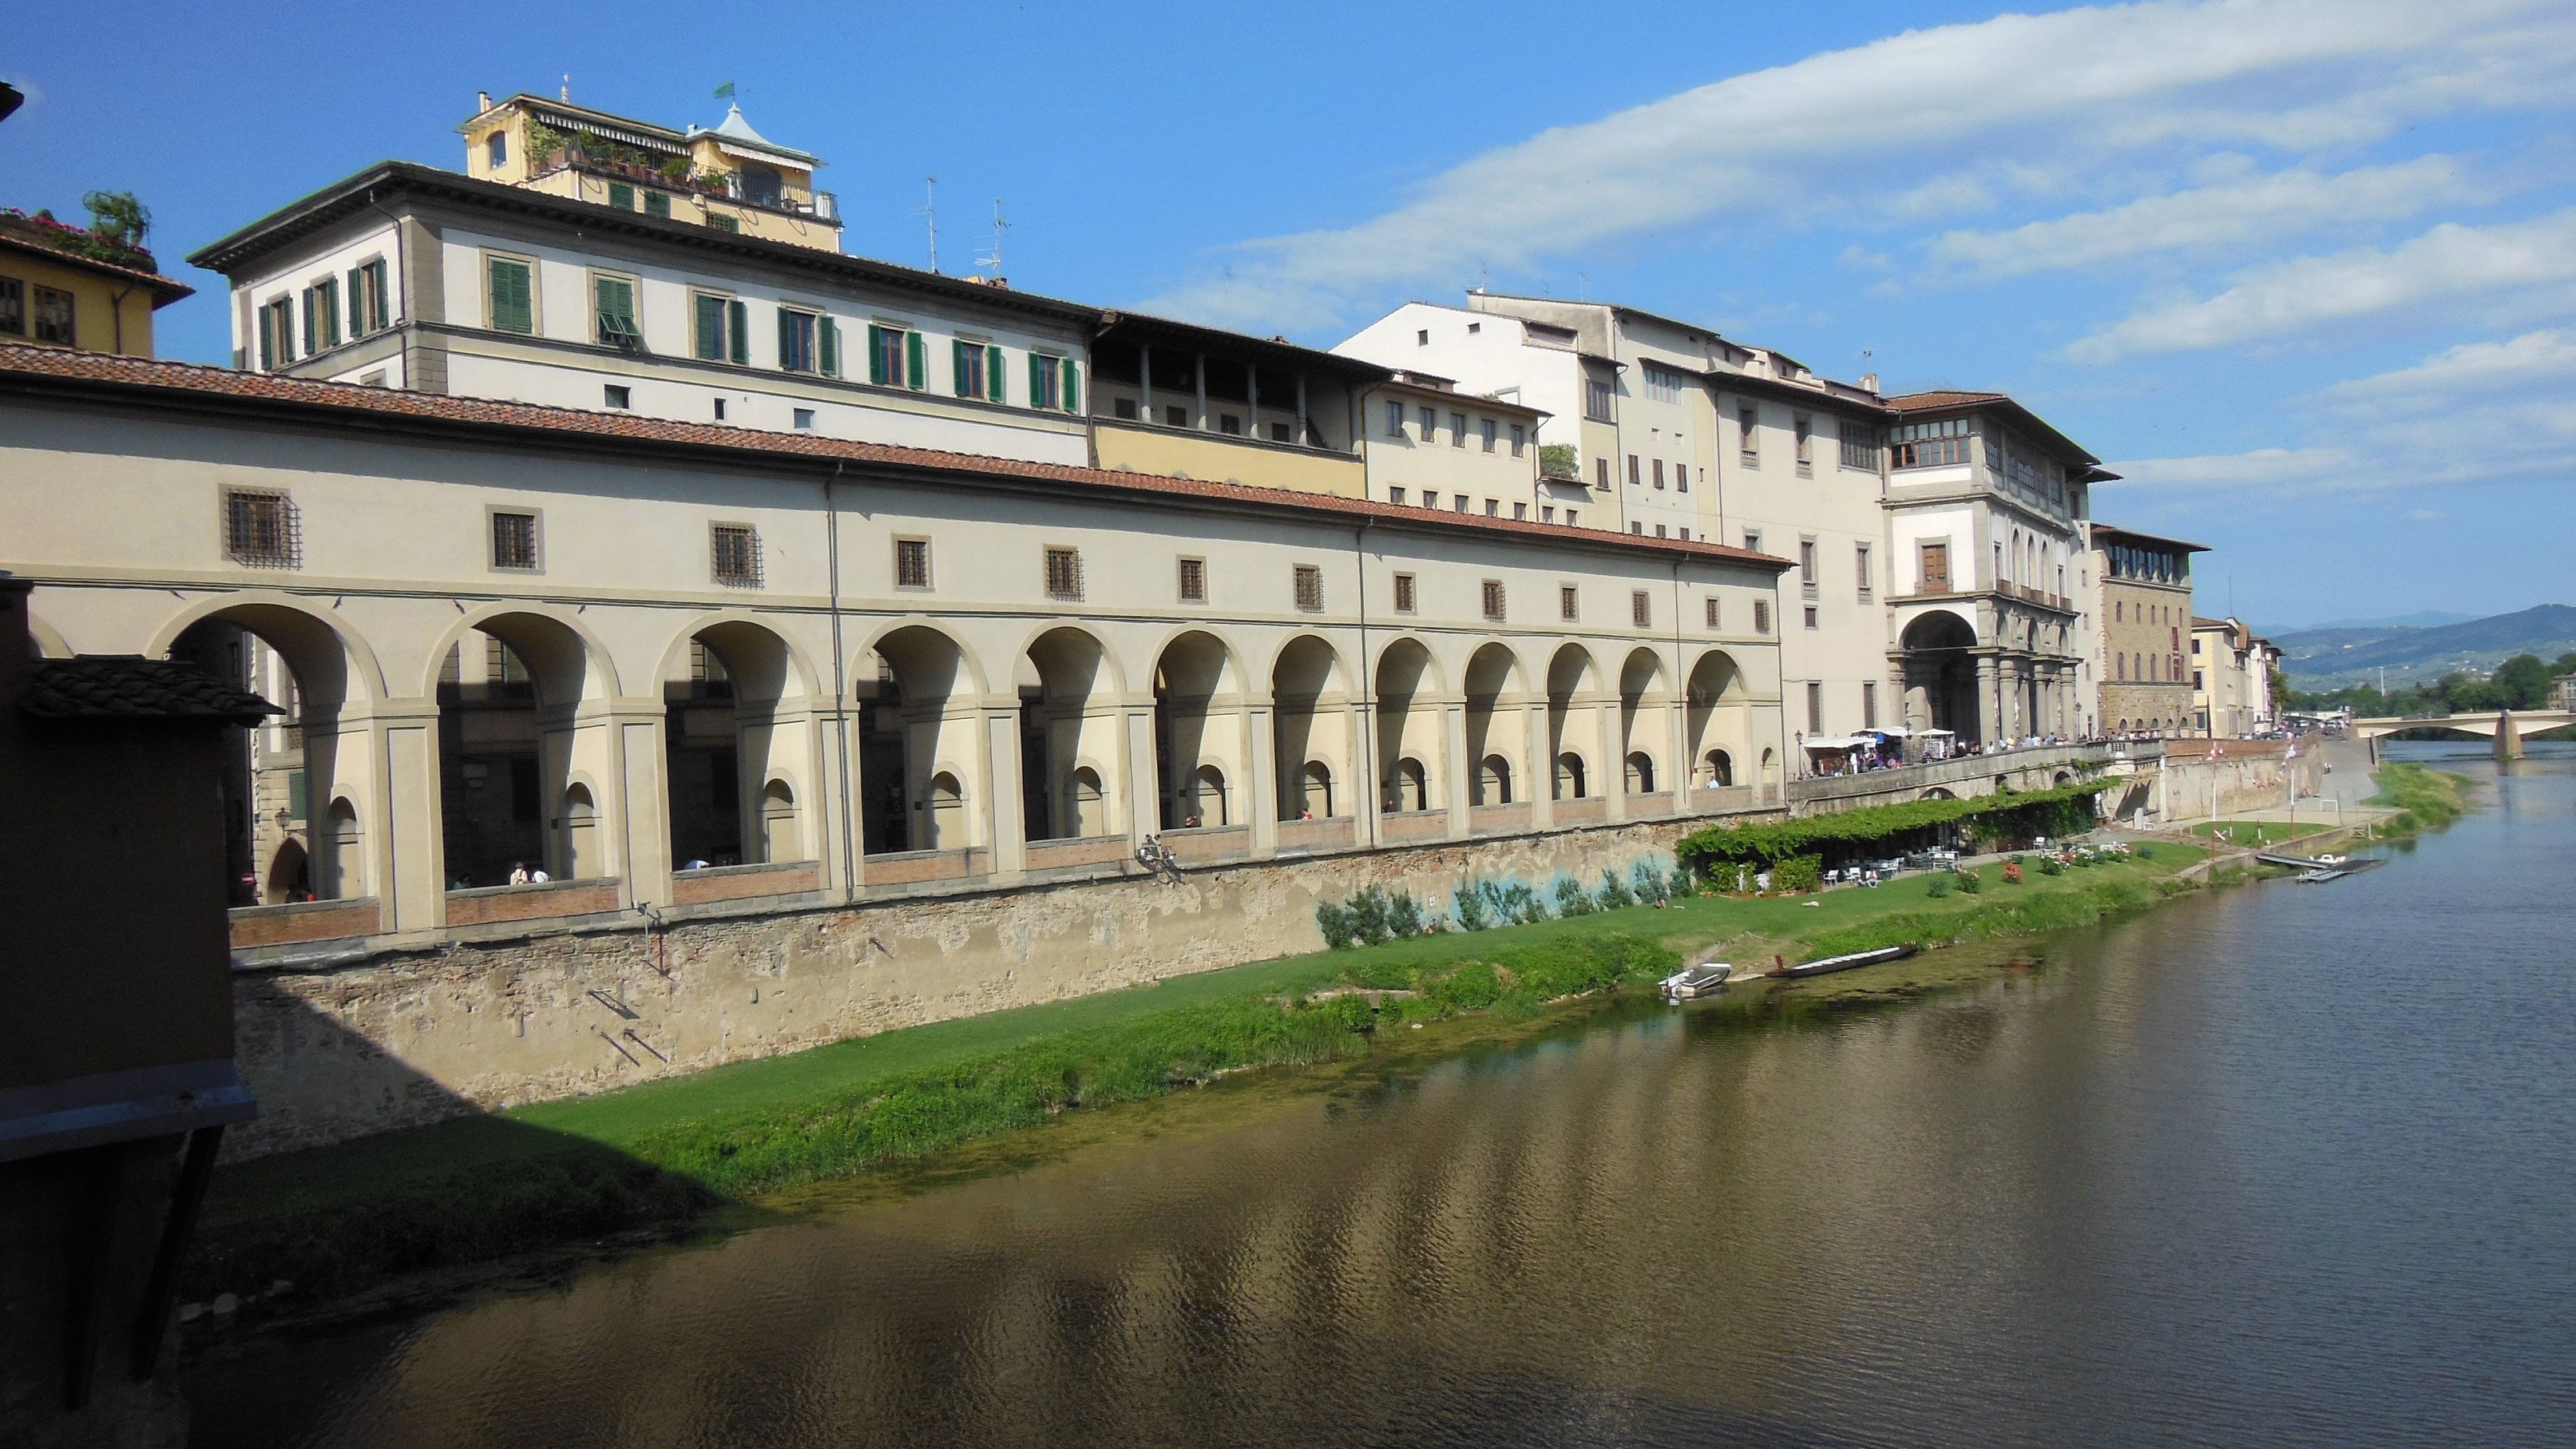 Buildings along a canal in Florence